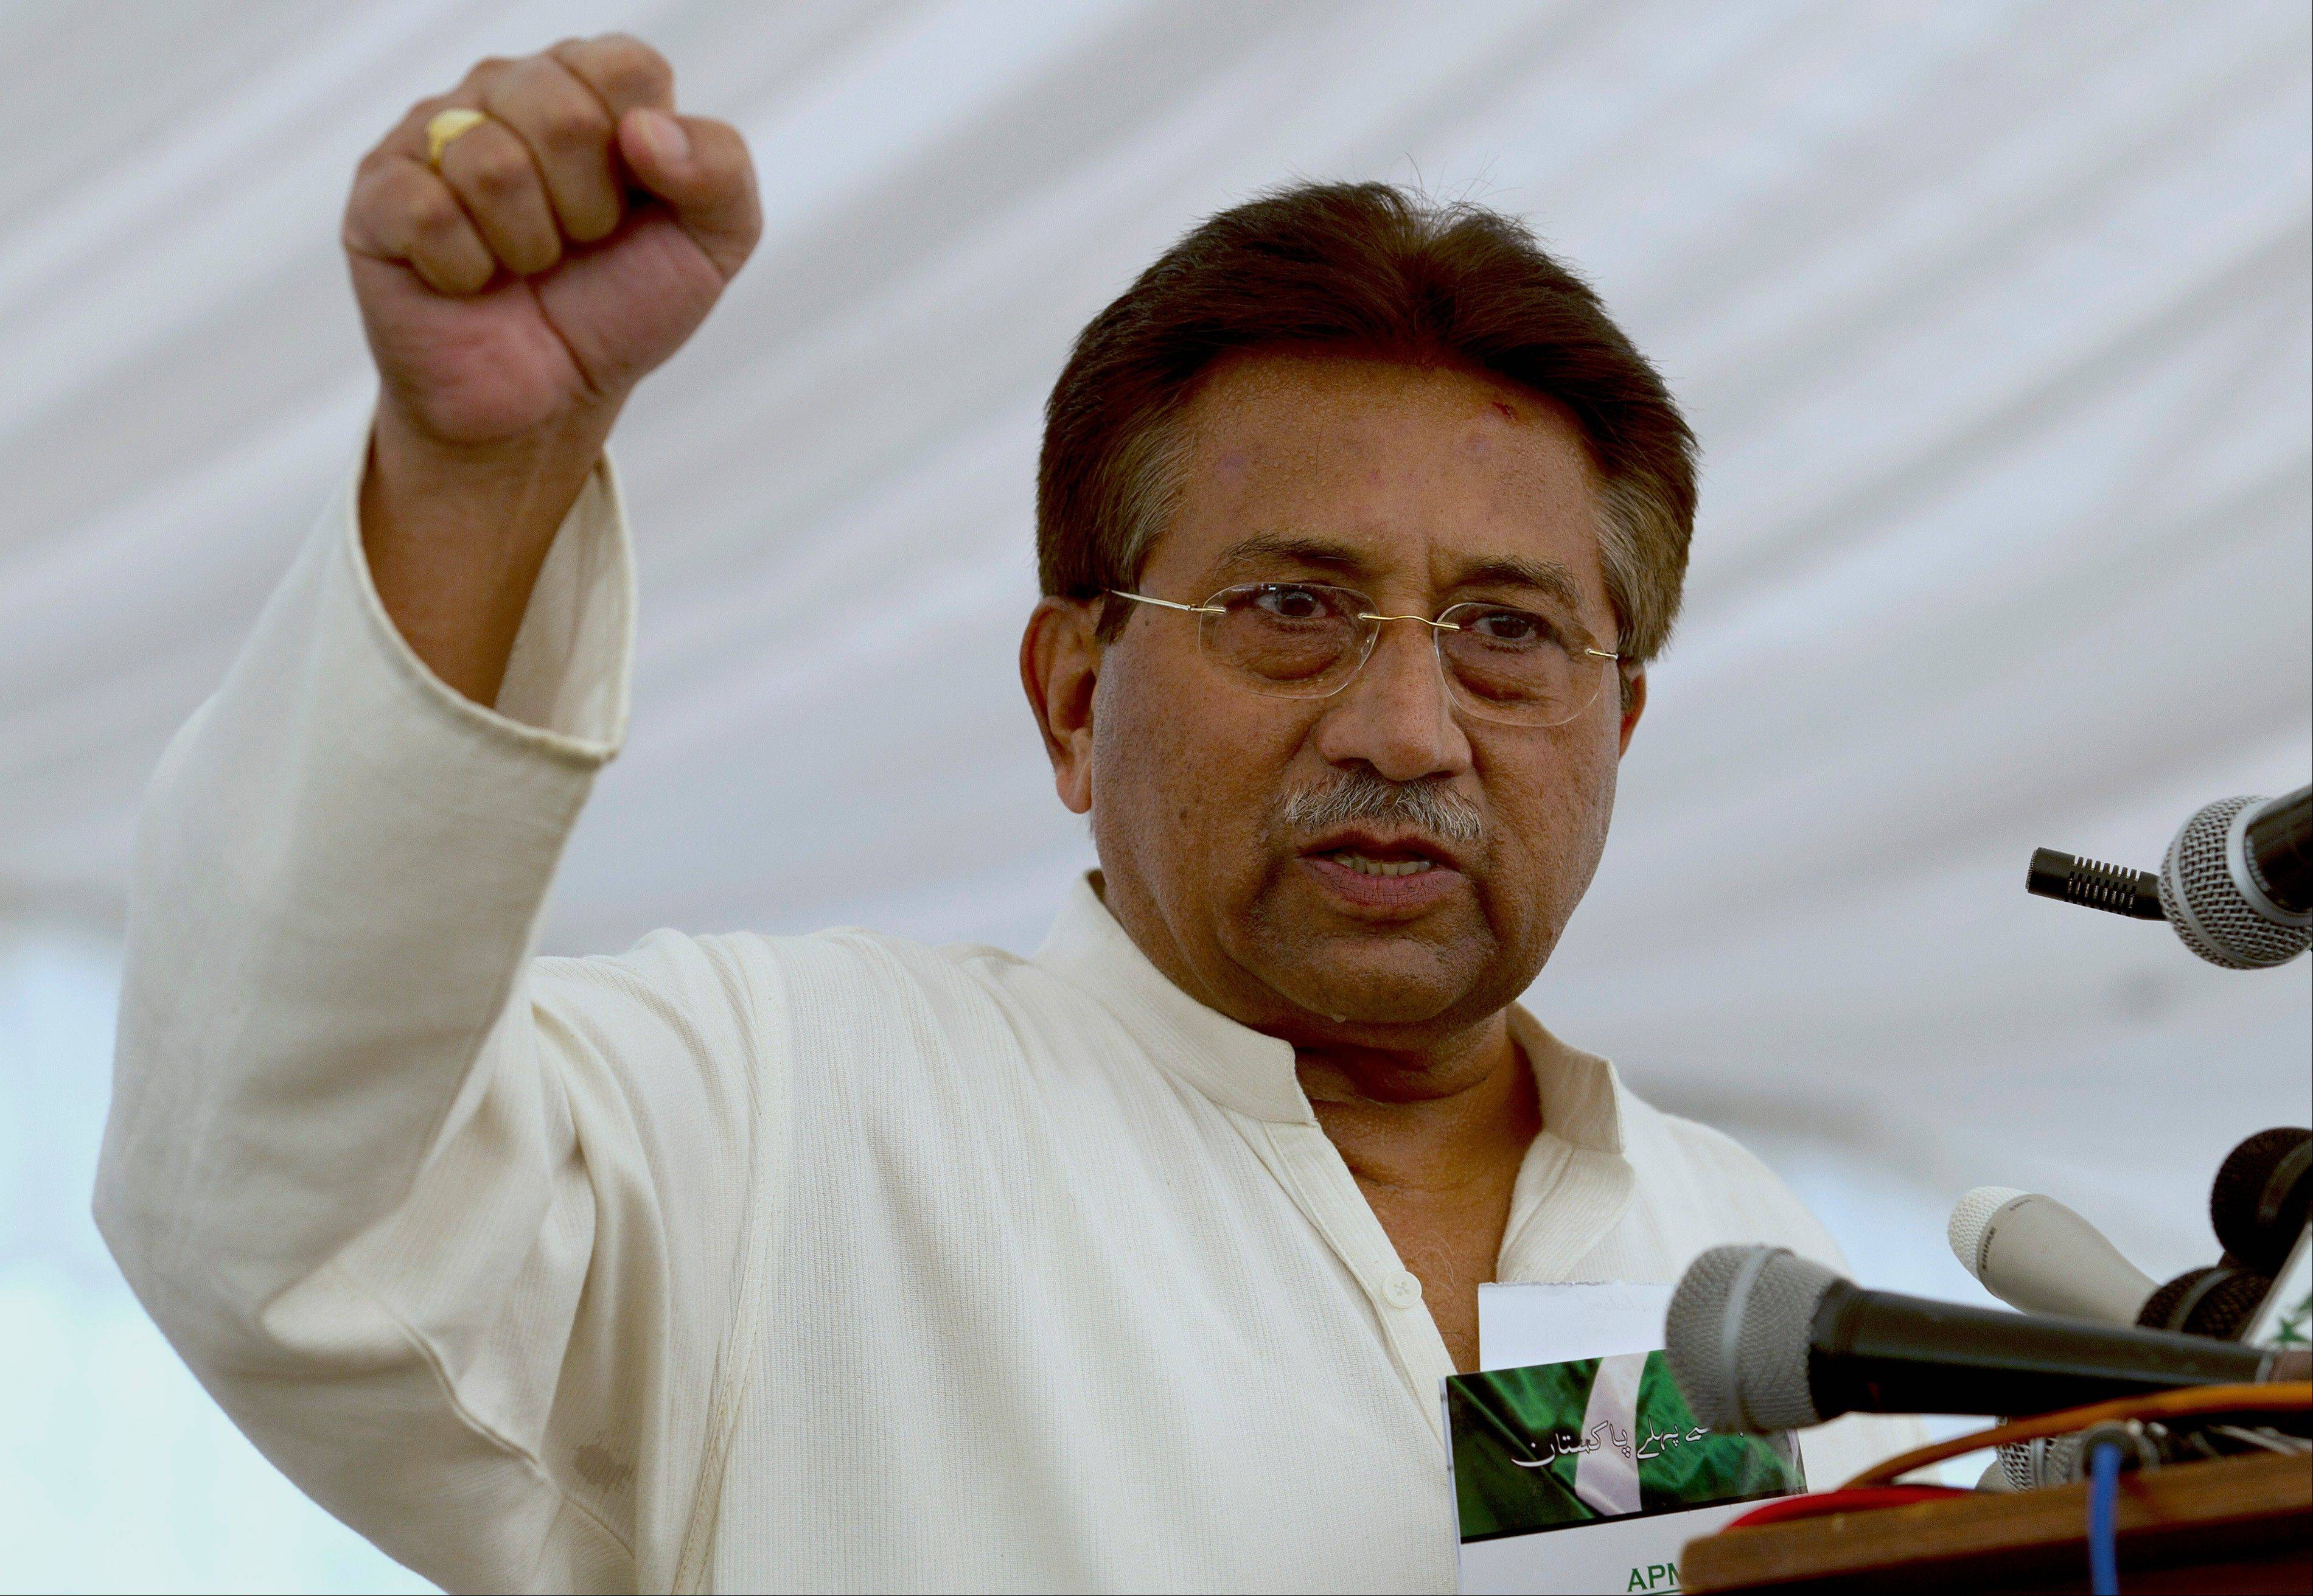 Pakistan�s former President and military ruler Pervez Musharraf will face trial for treason under Article 6 of the constitution for declaring a state of emergency in 2007 and suspending the constitution.